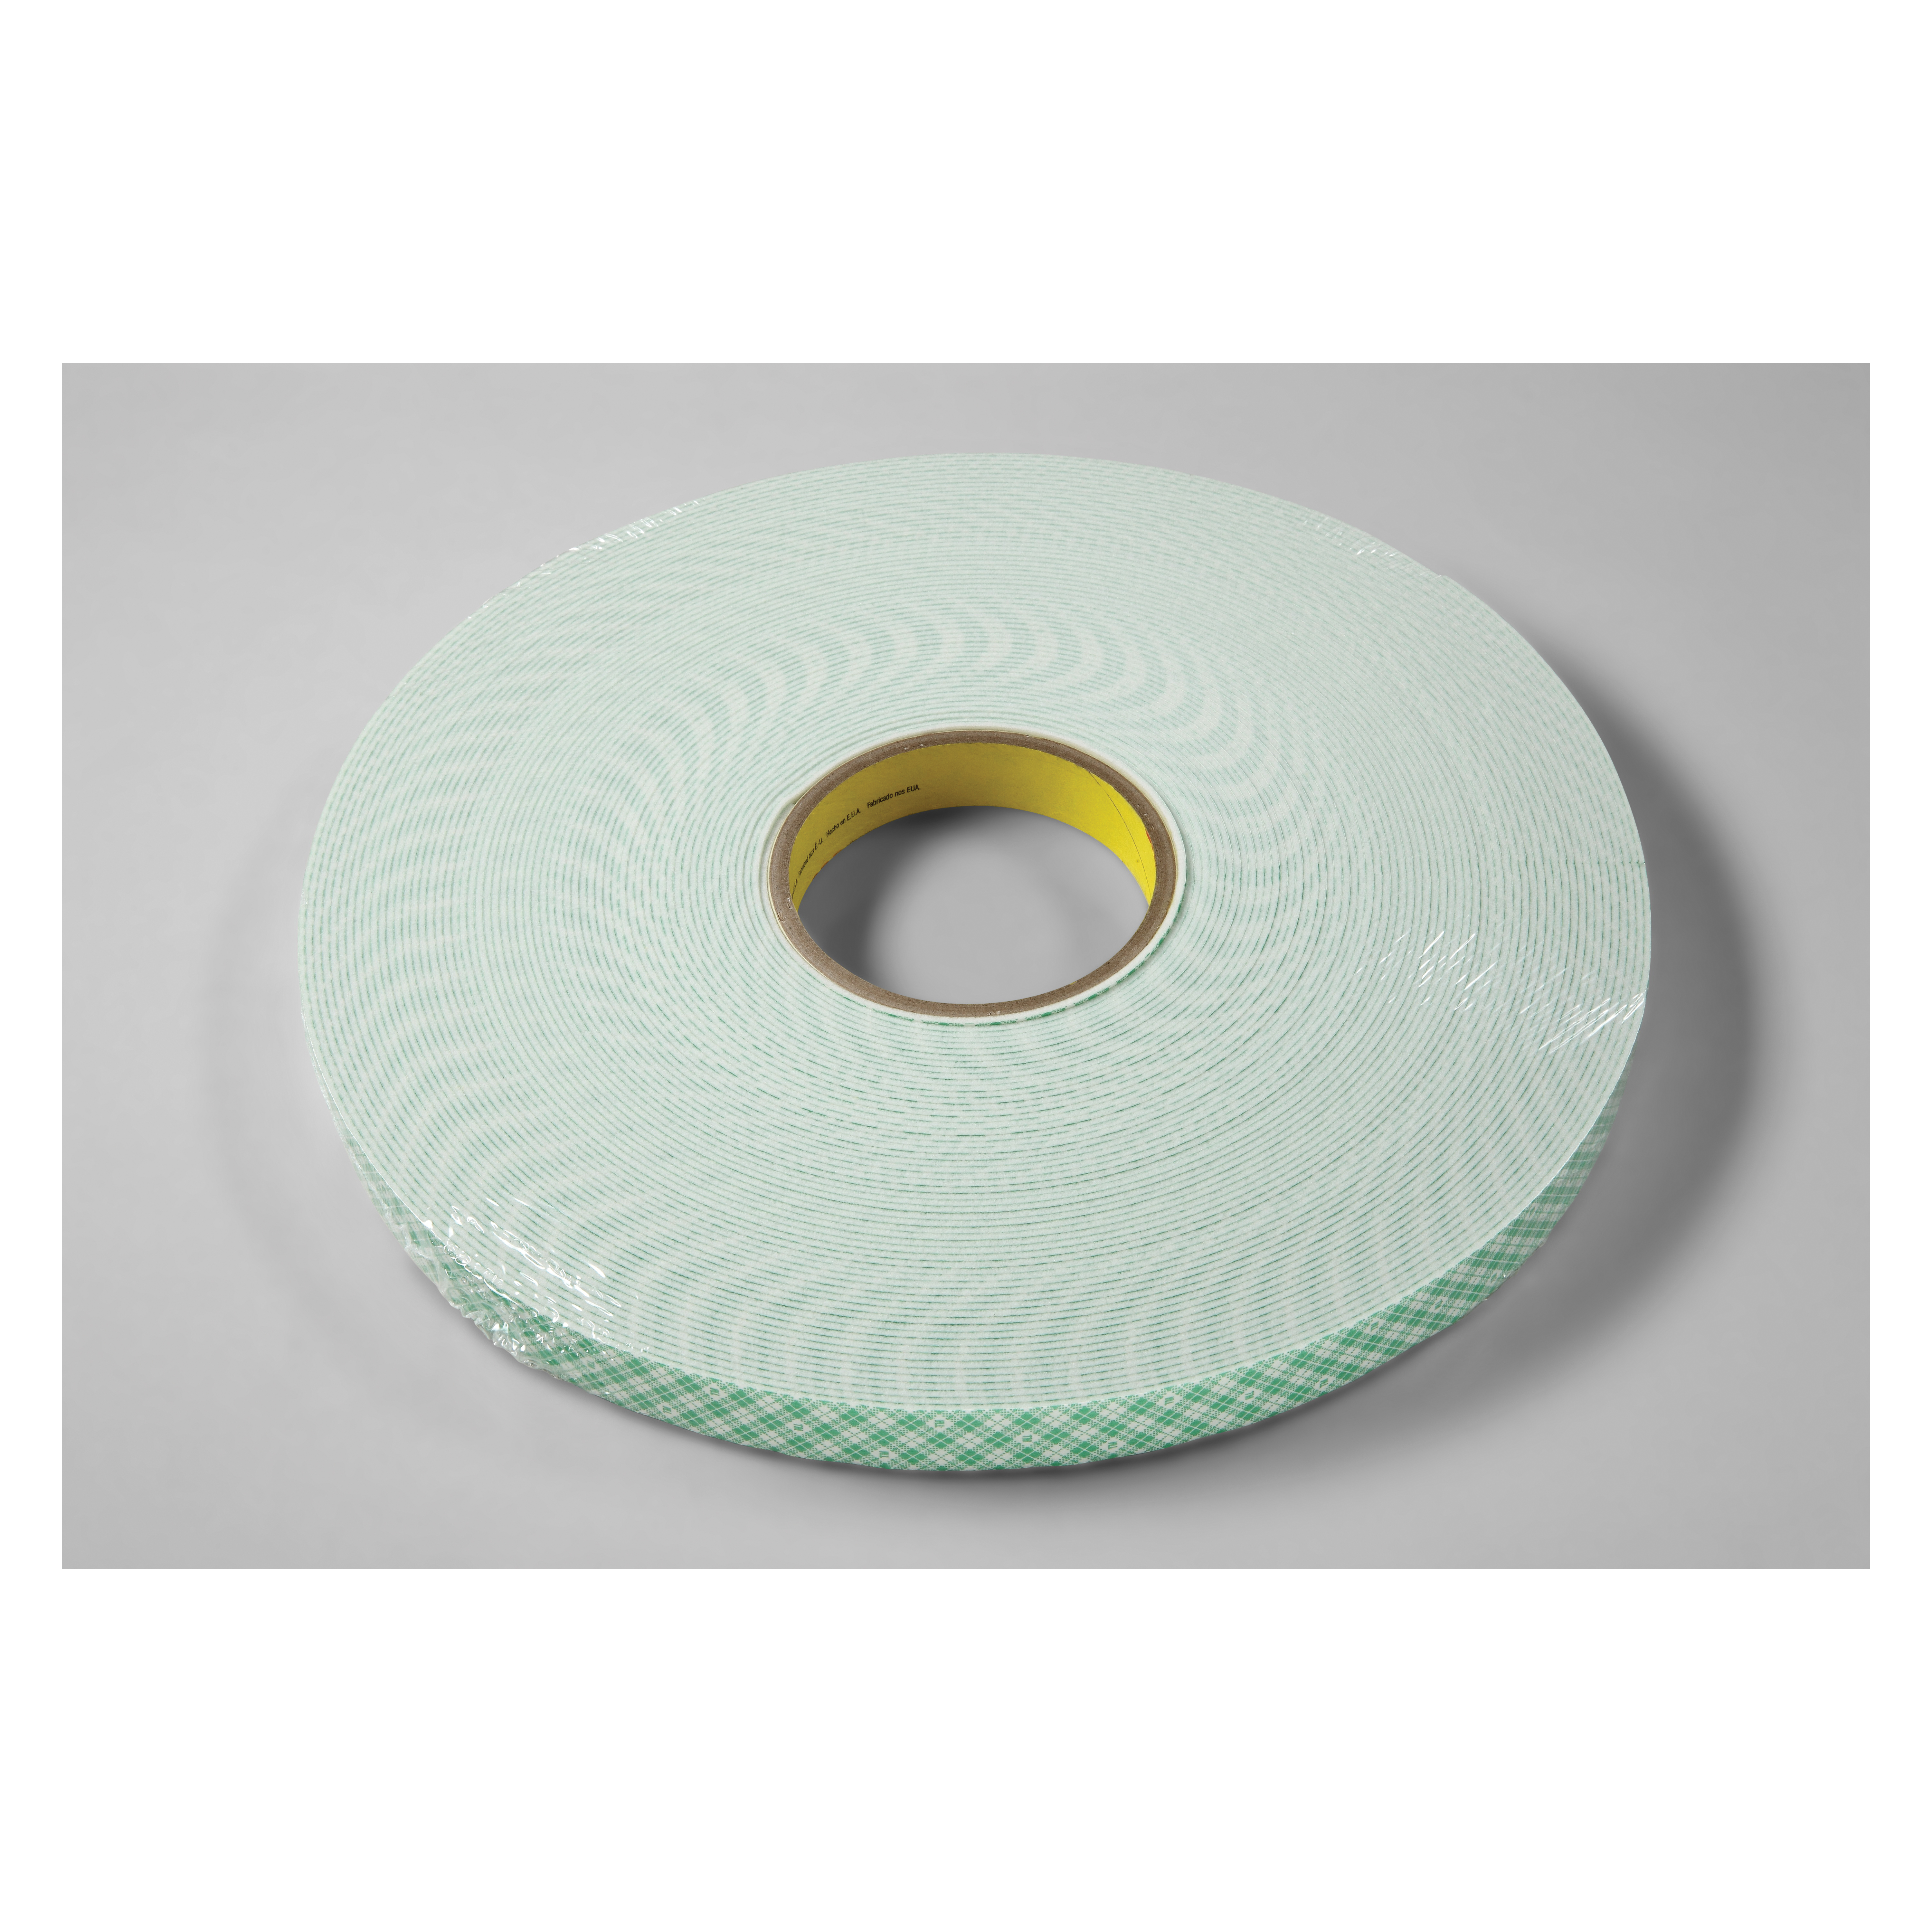 3M™ 021200-17056 Double Coated Tape, 36 yd L x 3/4 in W, 62 mil THK, Acrylic Adhesive, Urethane Foam Backing, Off-White